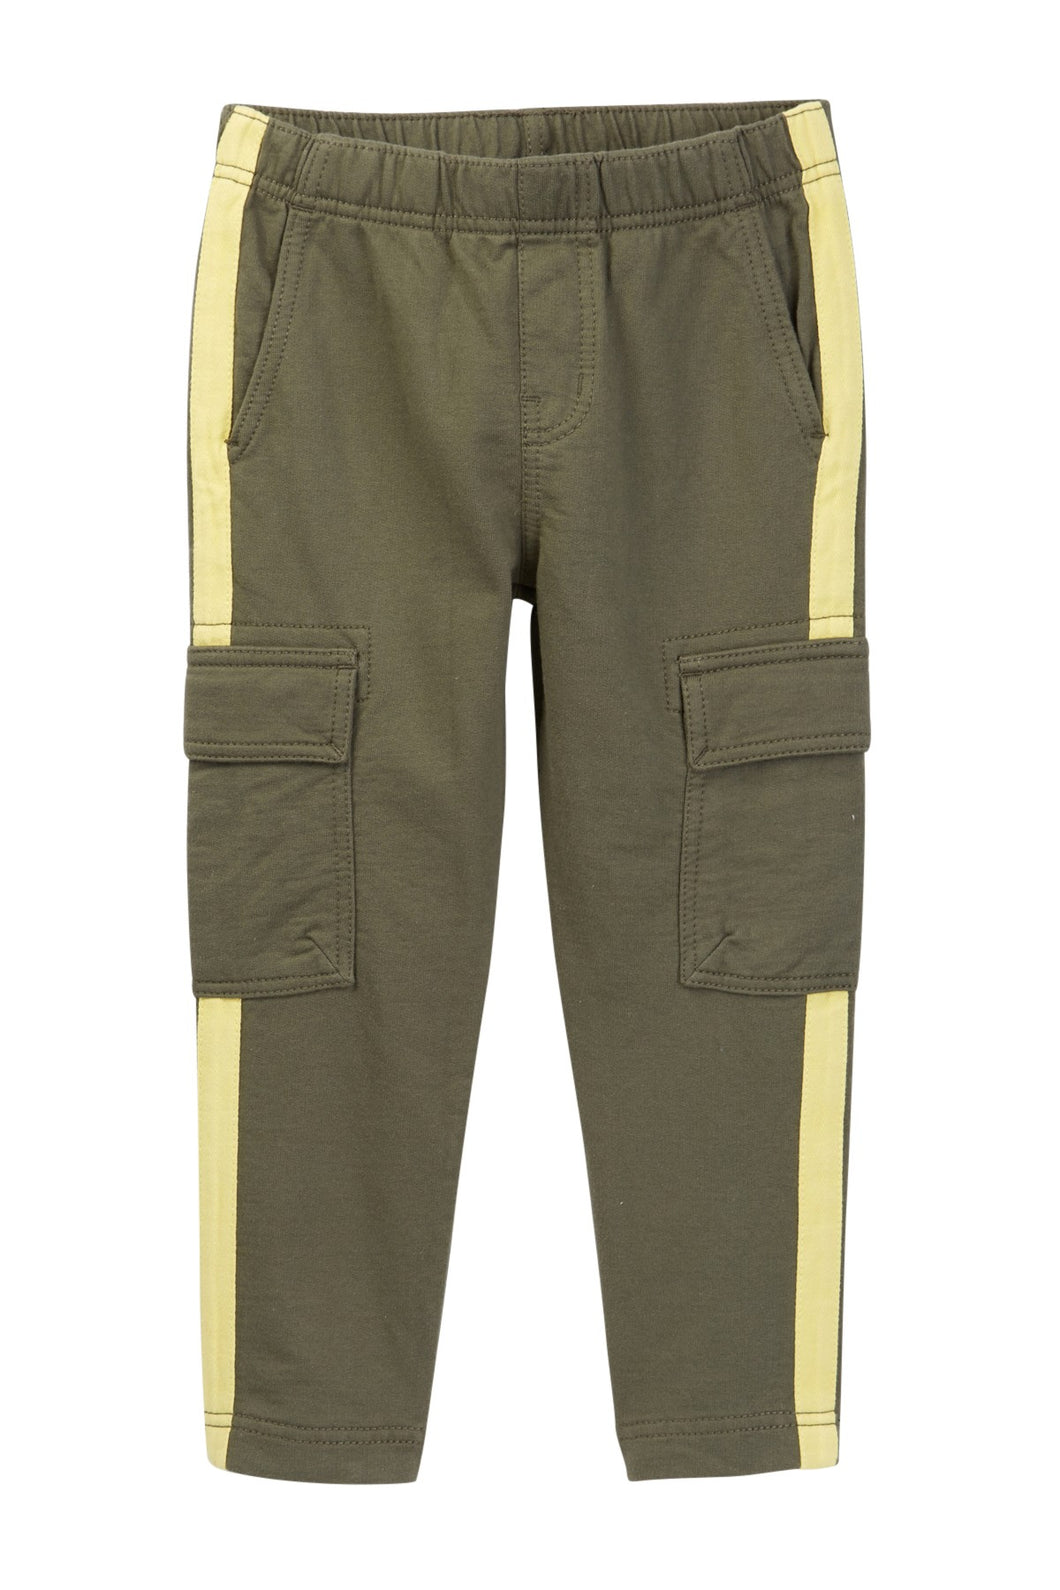 Tea Collection Side Stripe Cargo Pants